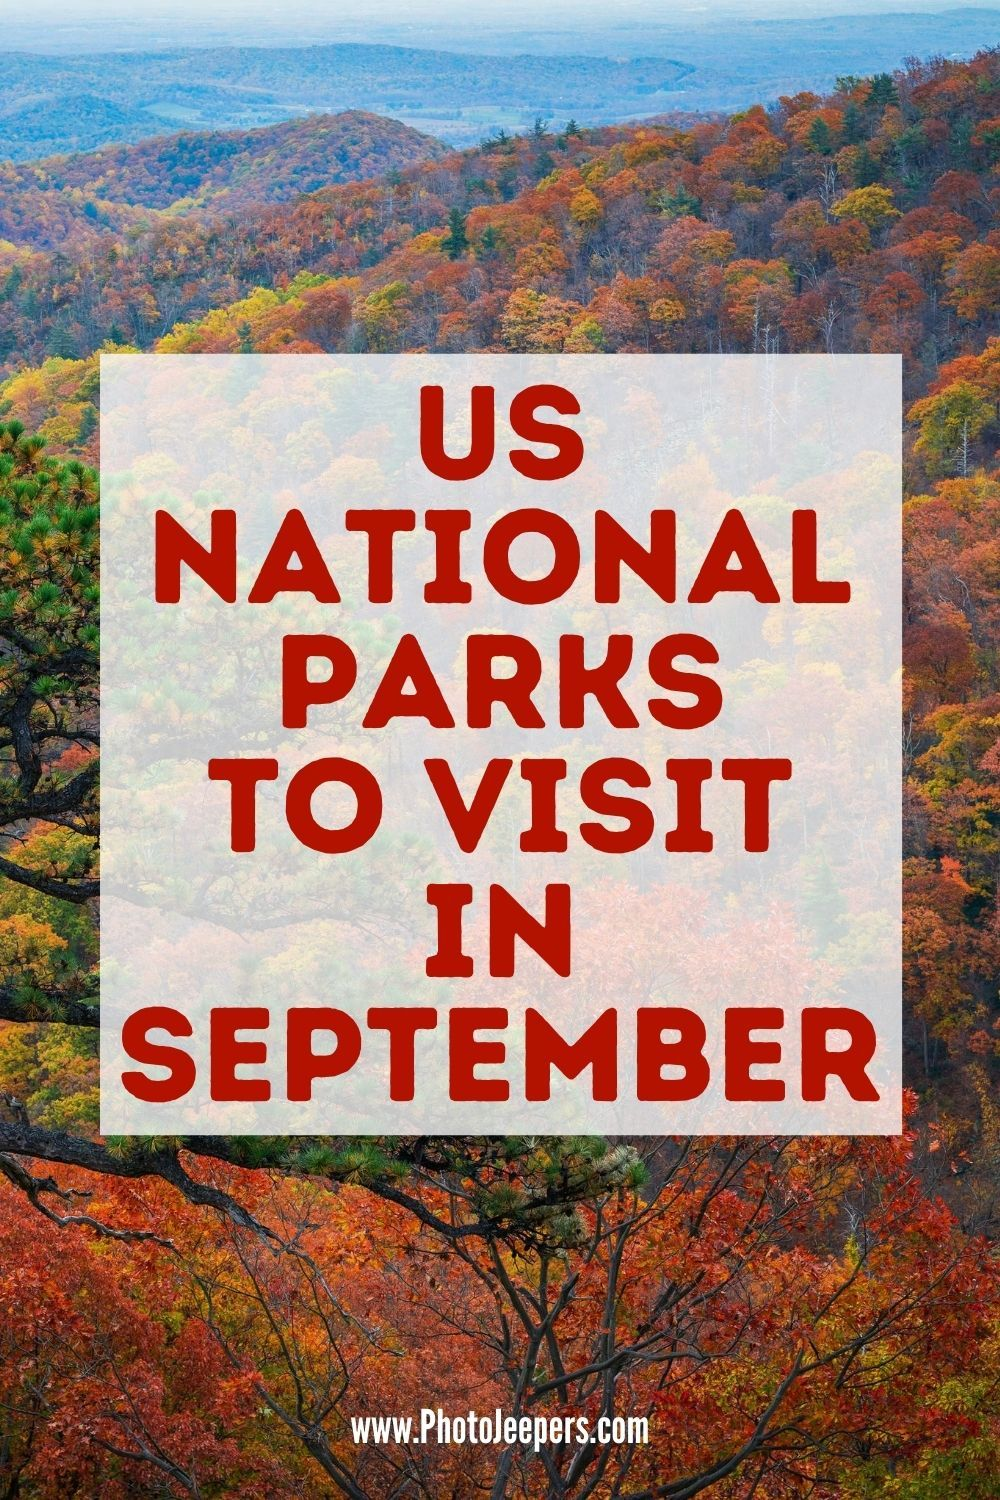 Must Visit Us National Parks In September Photojeepers In 2020 Fall Travel Destination Us National Parks National Parks